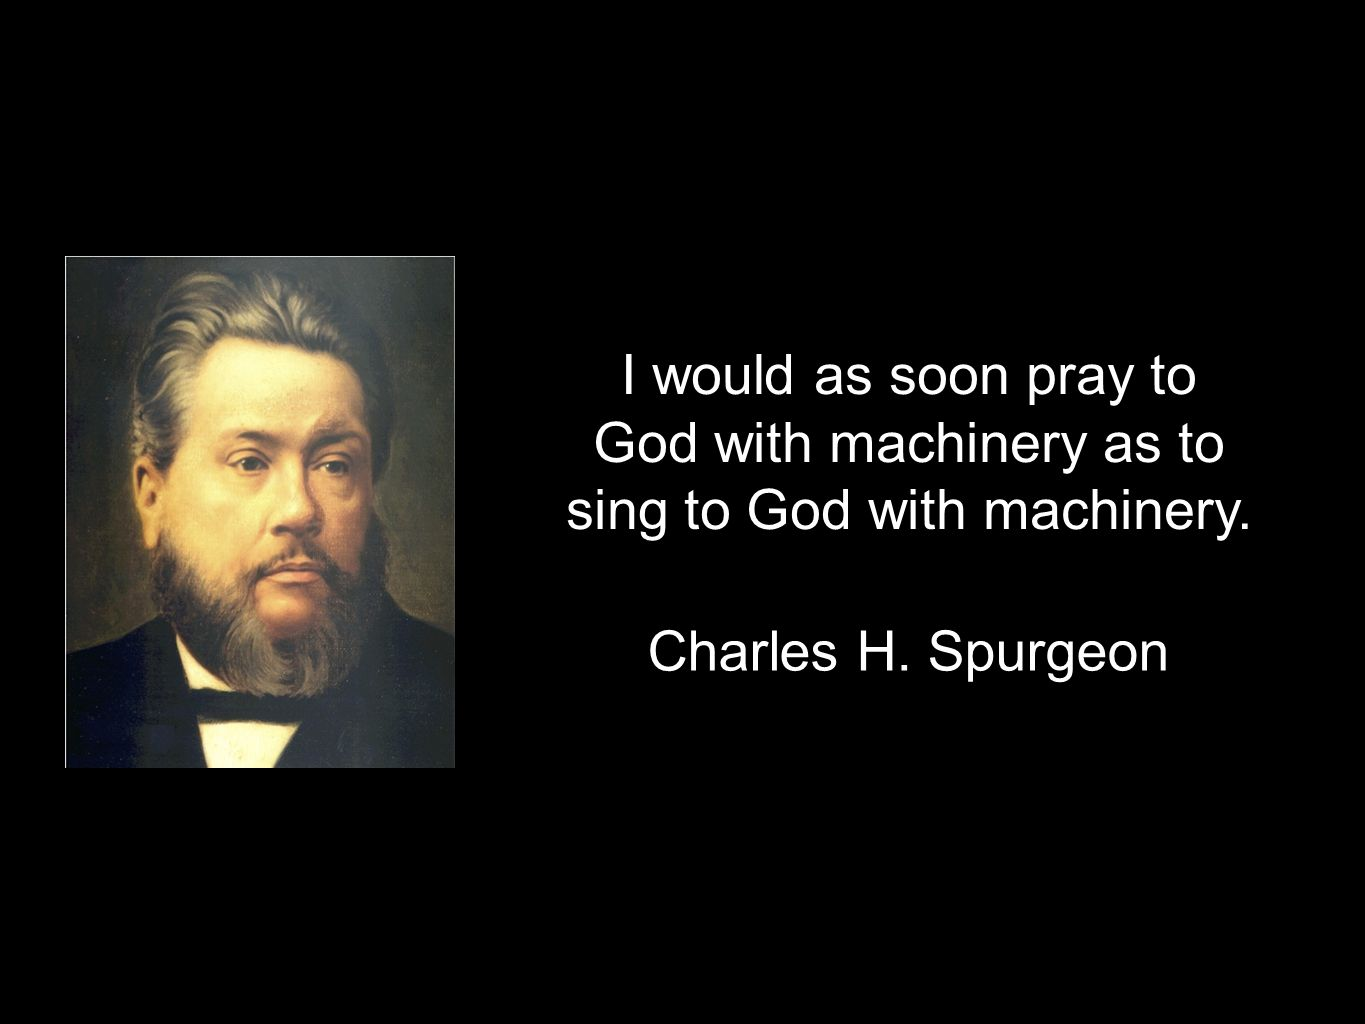 I would as soon pray to God with machinery as to sing to God with machinery. Charles H. Spurgeon